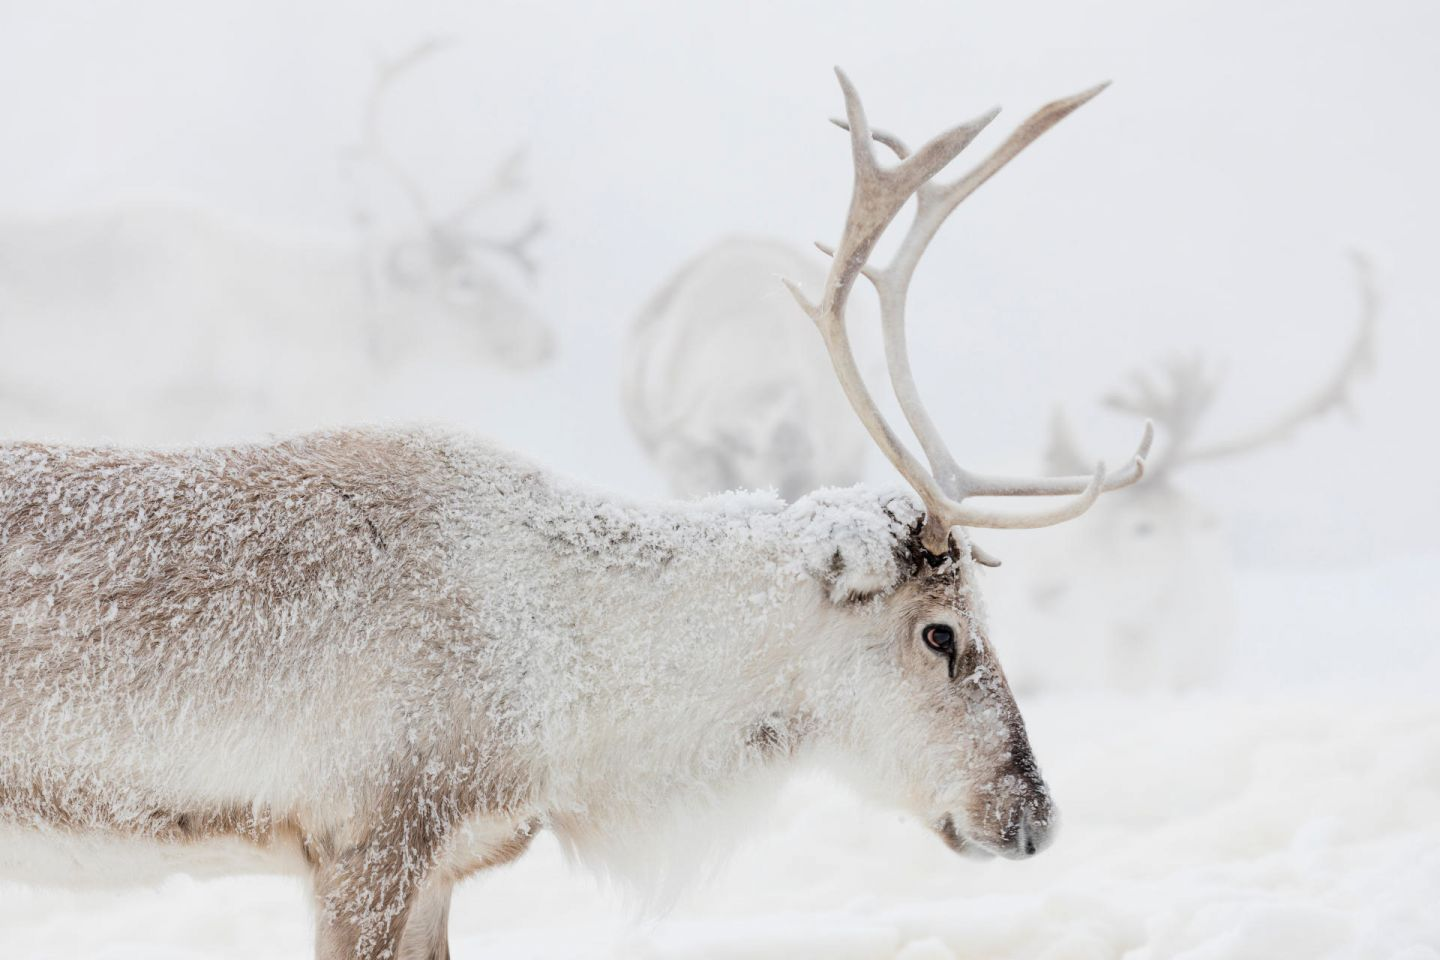 Reindeer in winter in Lapland, from the filming of Ailo's Journey